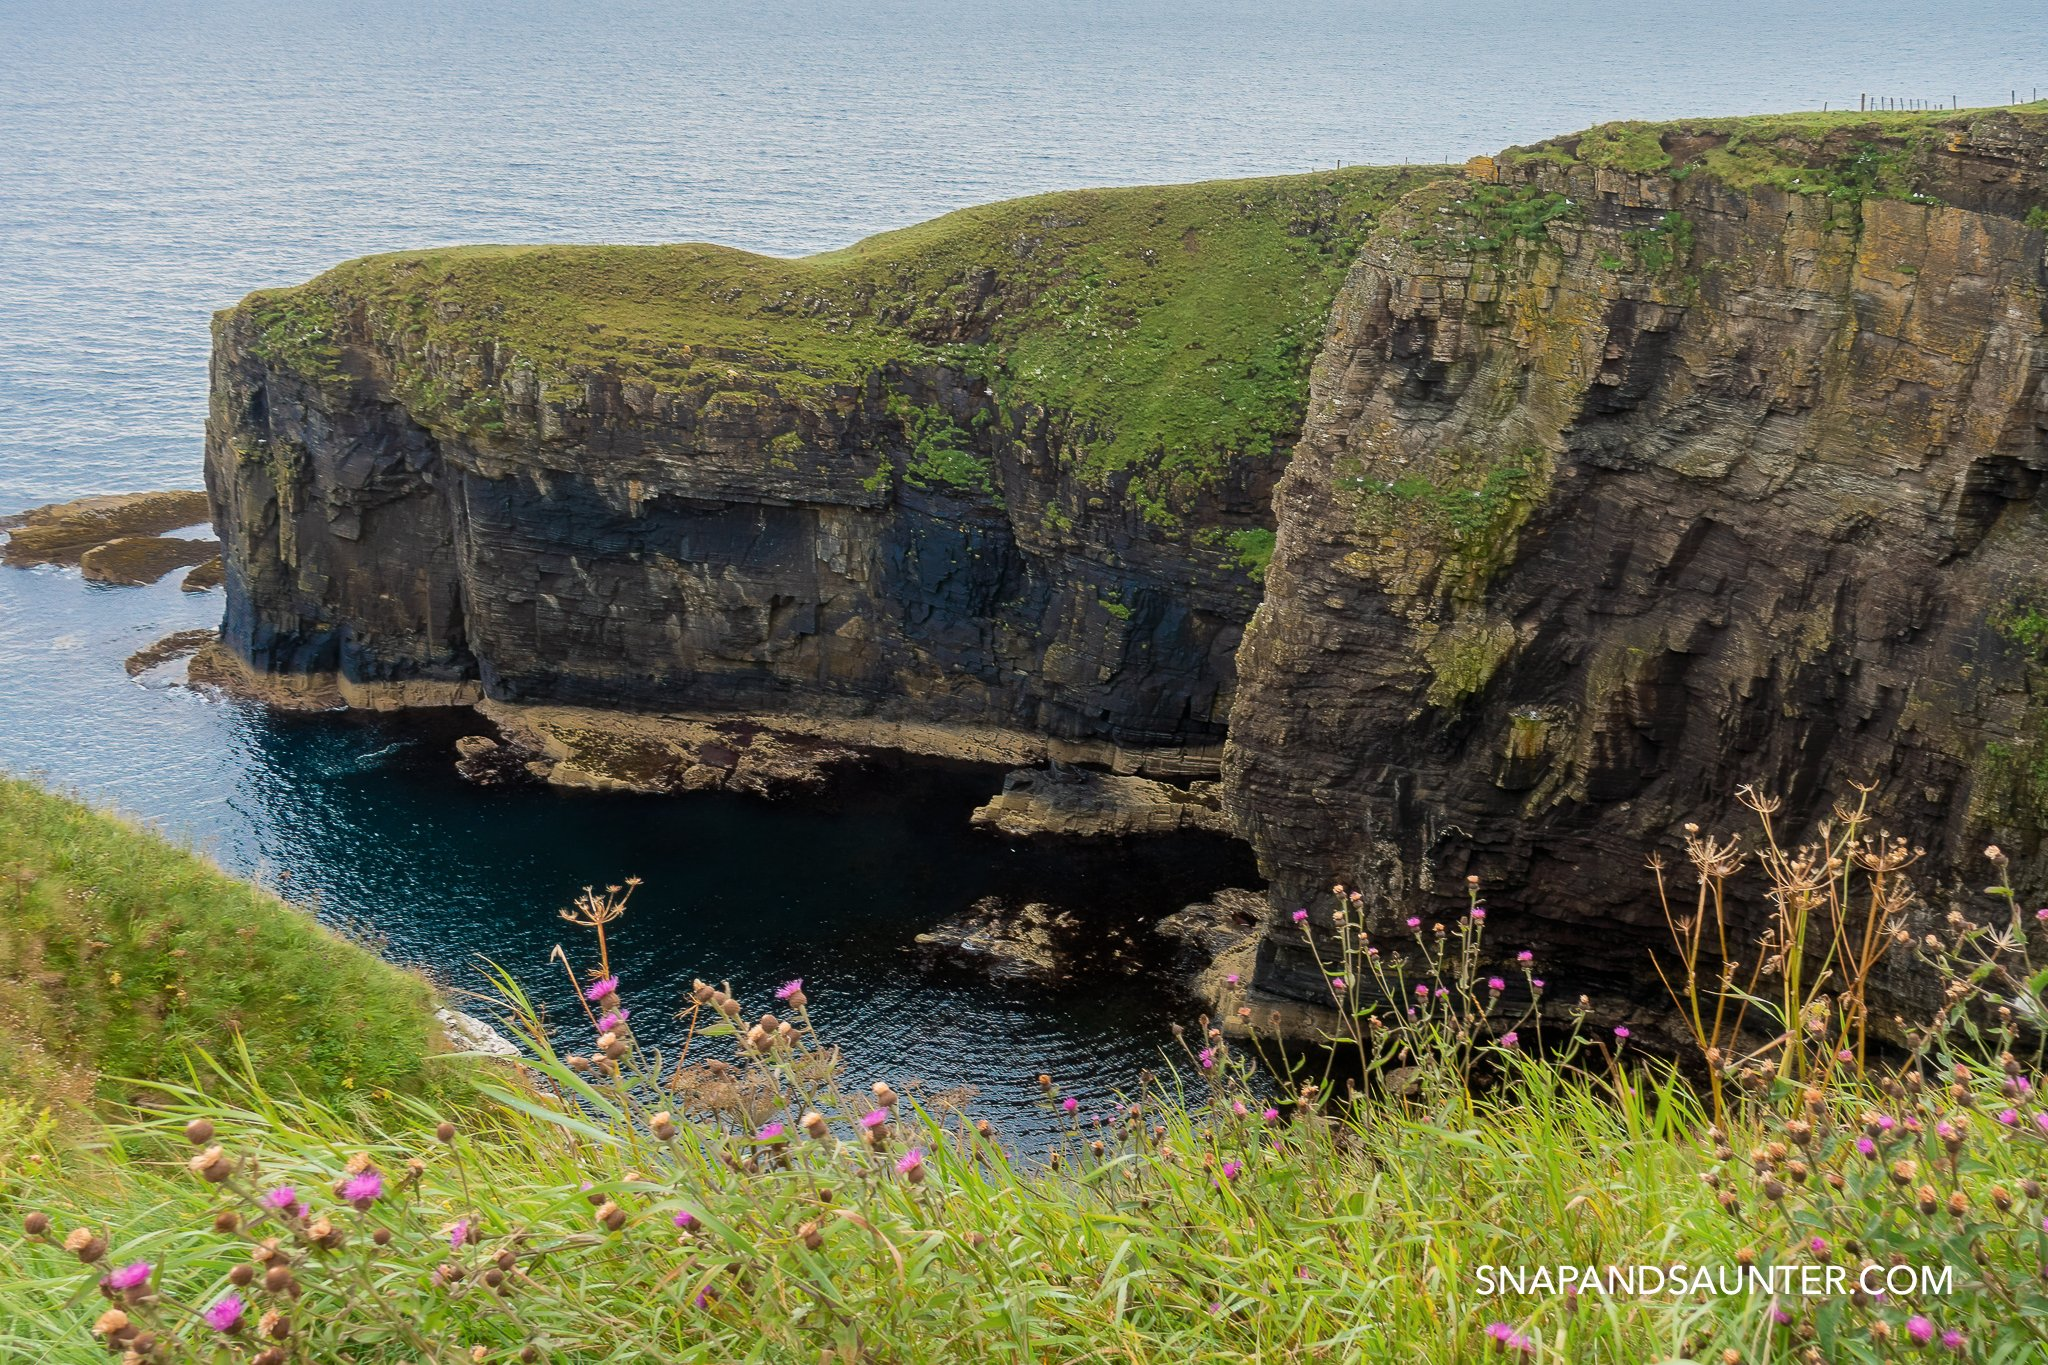 Cliffs at Whaligoe Steps on the North Coast 500 route. Martina Hardiman Photography.